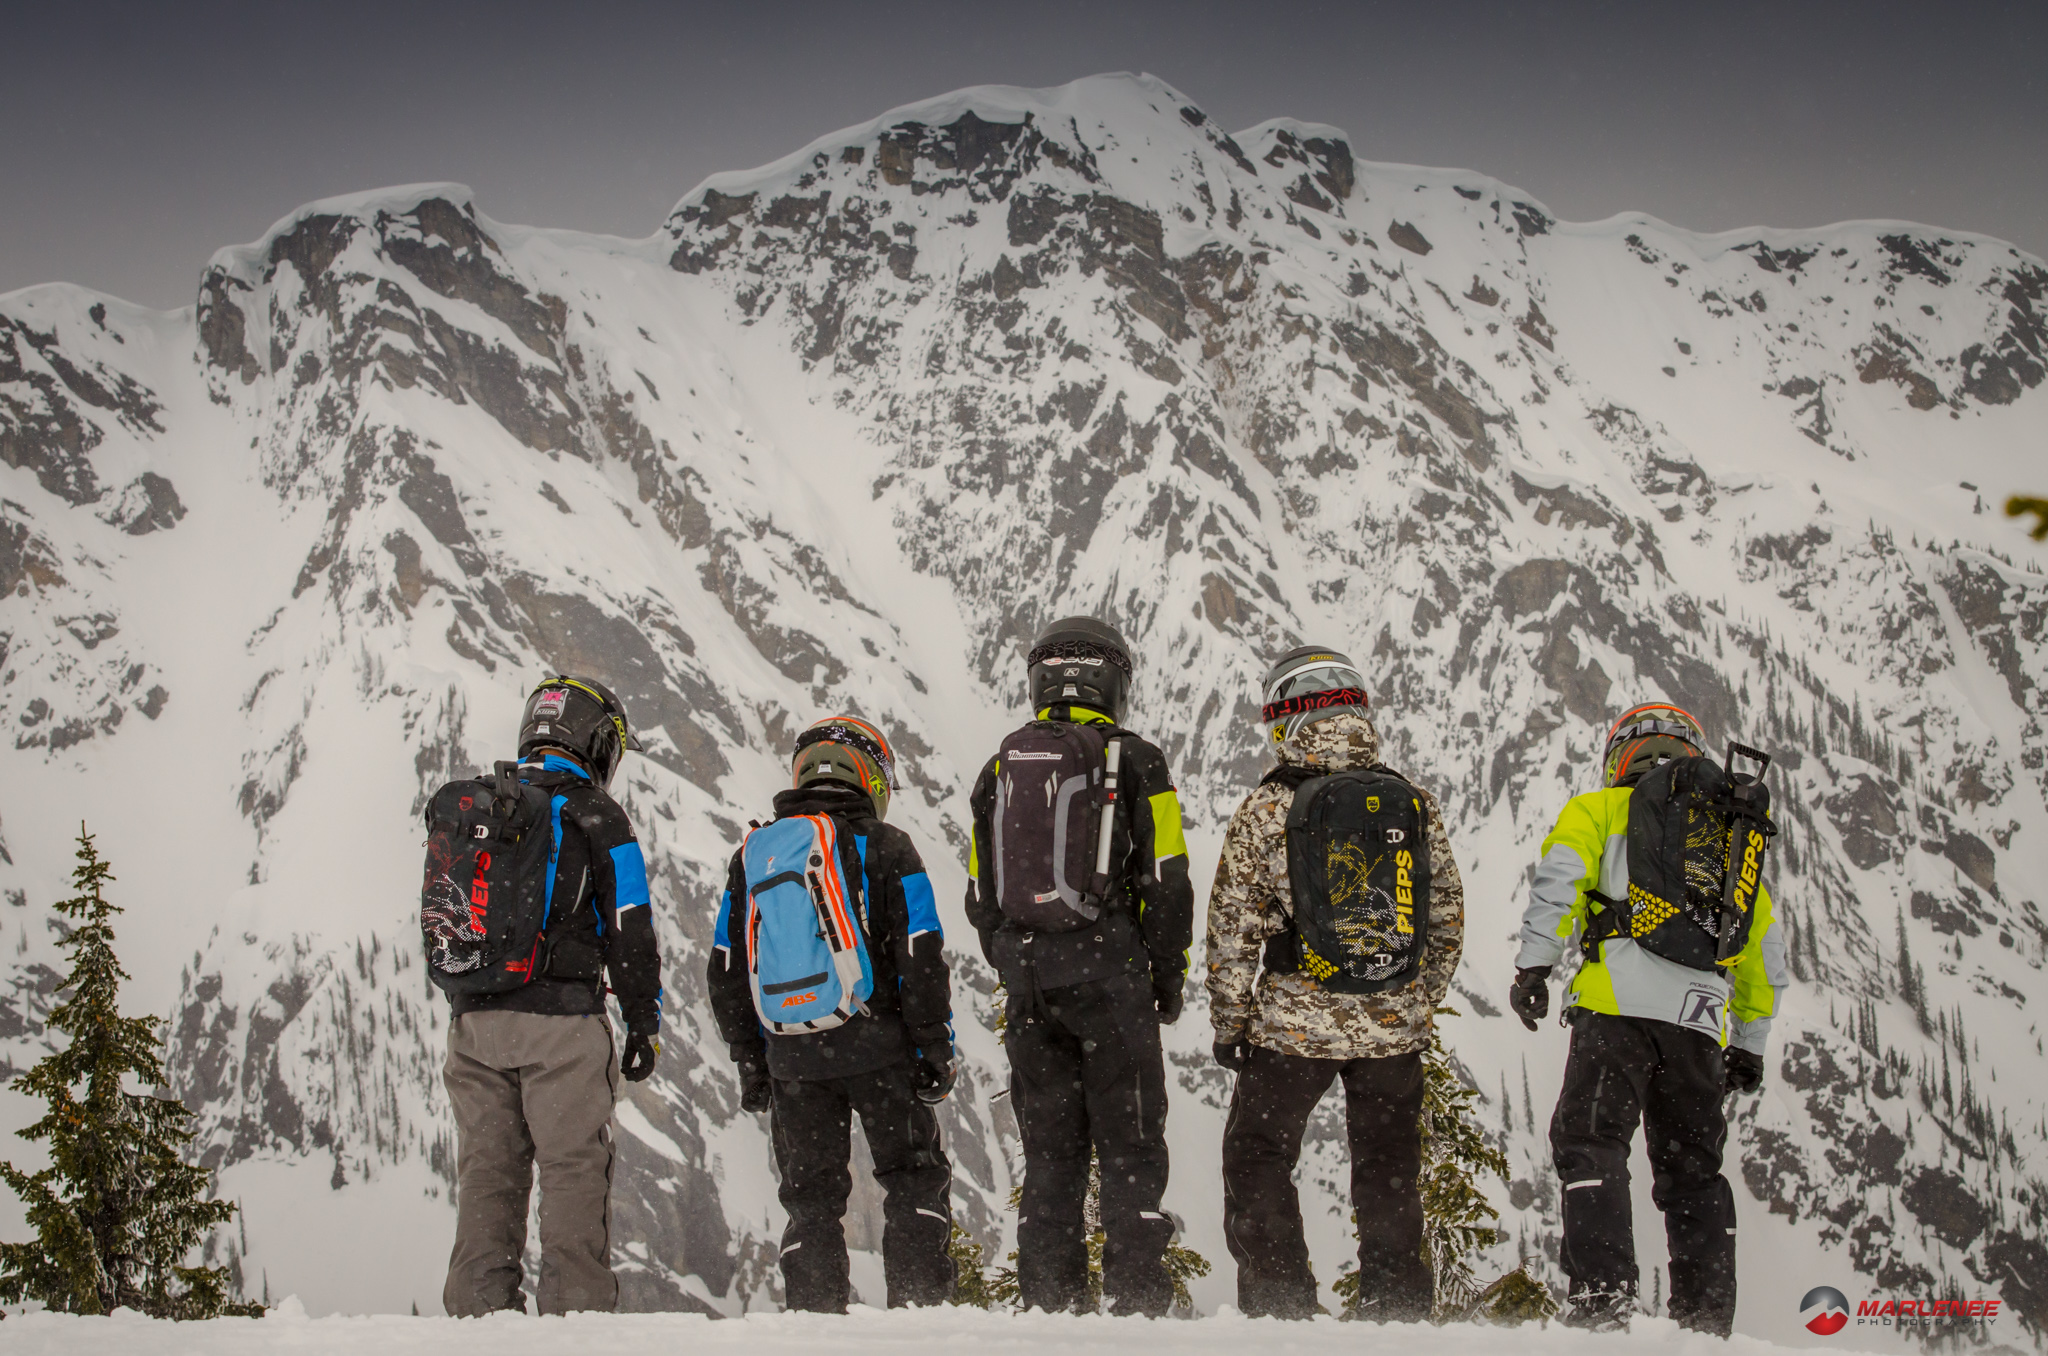 Cole Willford, Jared Sessions, Matt Entz, Dan Adams, Trennis Baer, and Sid Huntsman peer over a cliff in Revelstoke, BC